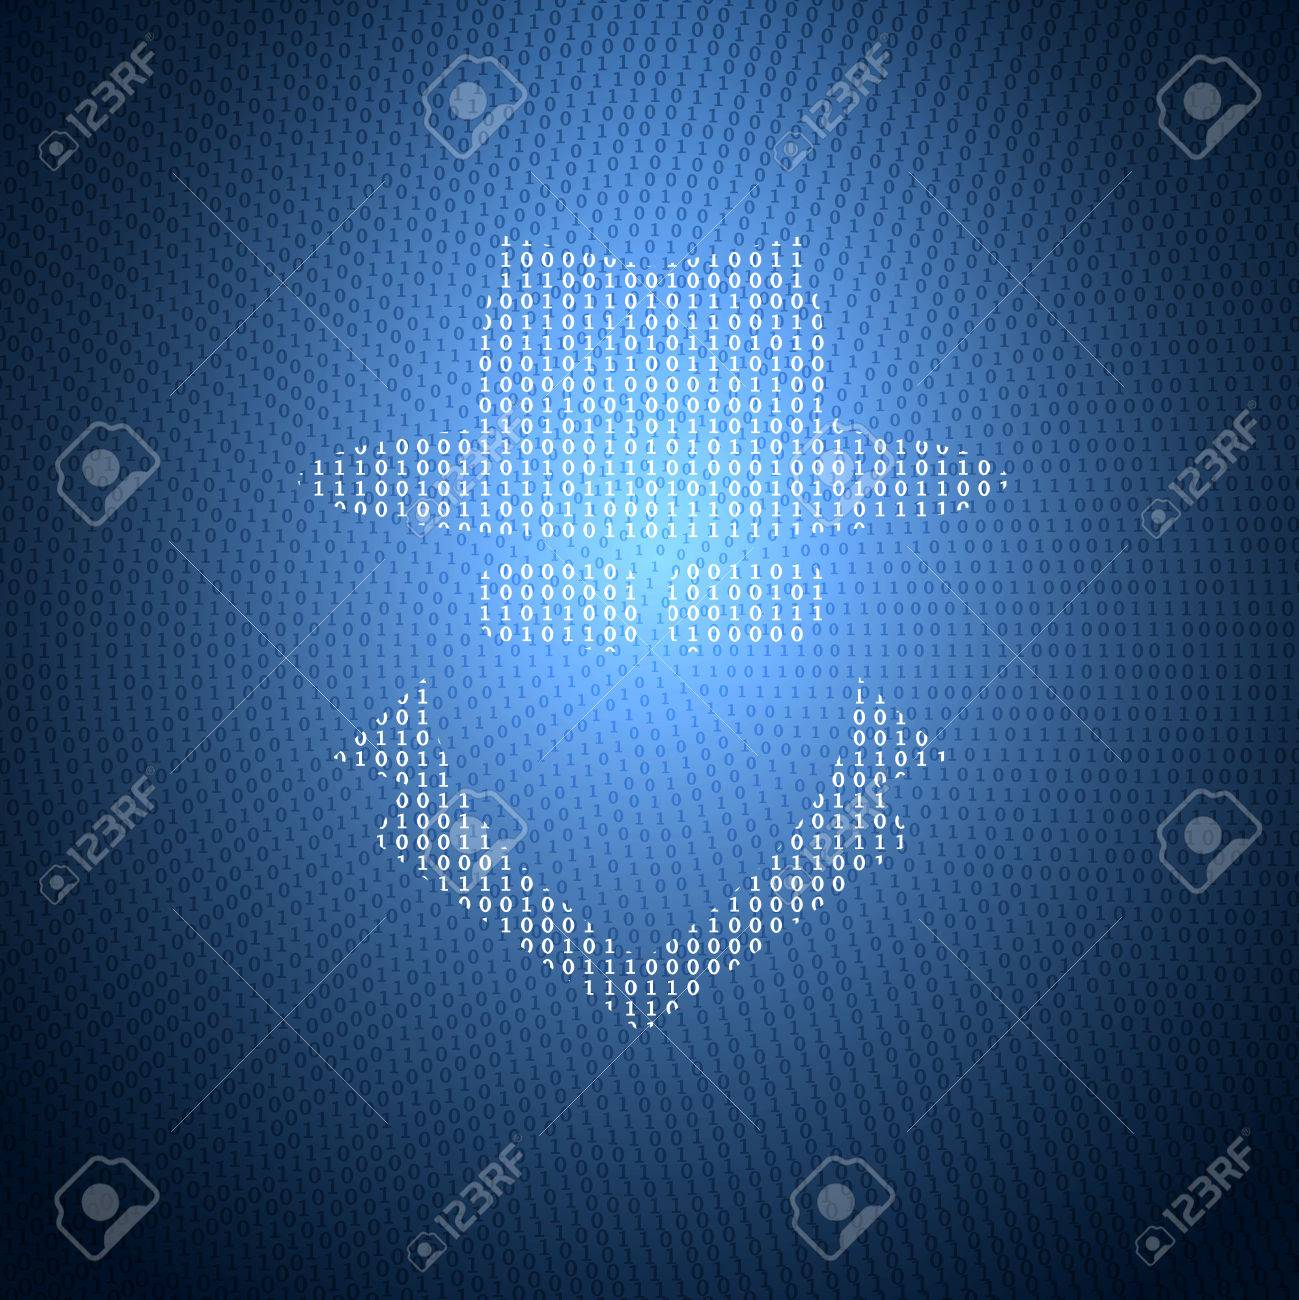 Glowing Symbol Of The Spy From A Binary Code On A Dark Blue ...